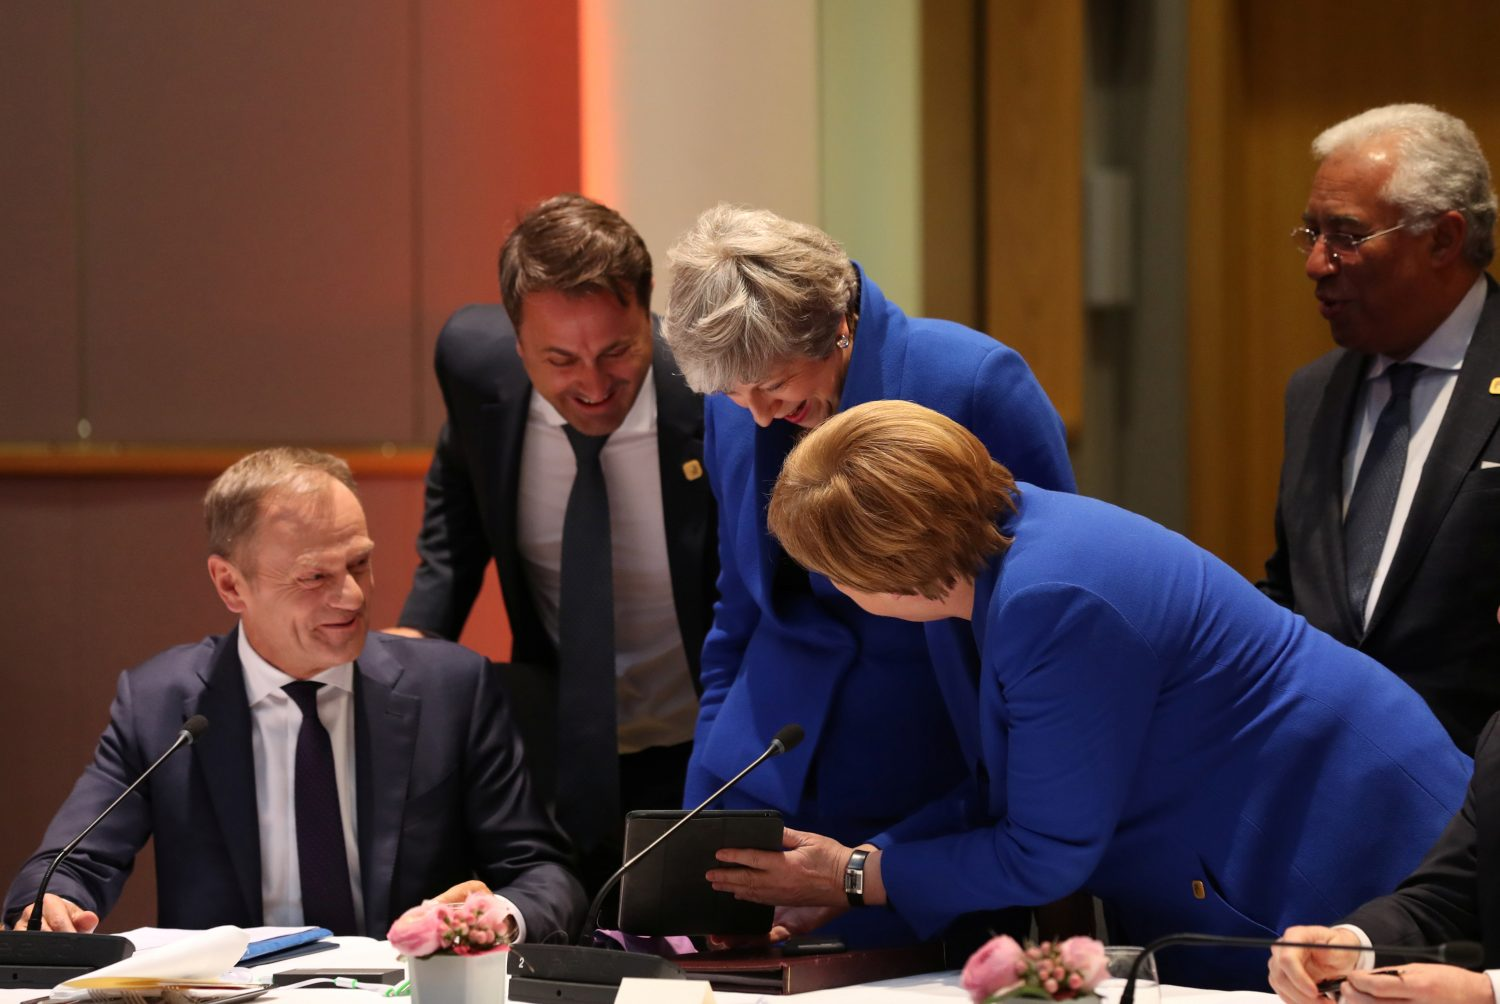 European Council President Donald Tusk, Luxembourg's Prime Minister Xavier Bettel, Britain's Prime Minister Theresa May, Germany's Chancellor Angela Merkel and Portugal's Prime Minister Antonio Costa look at a tablet ahead of a European Council meeting on Brexit at the Europa Building at the European Parliament in Brussels, Belgium April 10, 2019. Kenzo Tribouillard/Pool via REUTERS